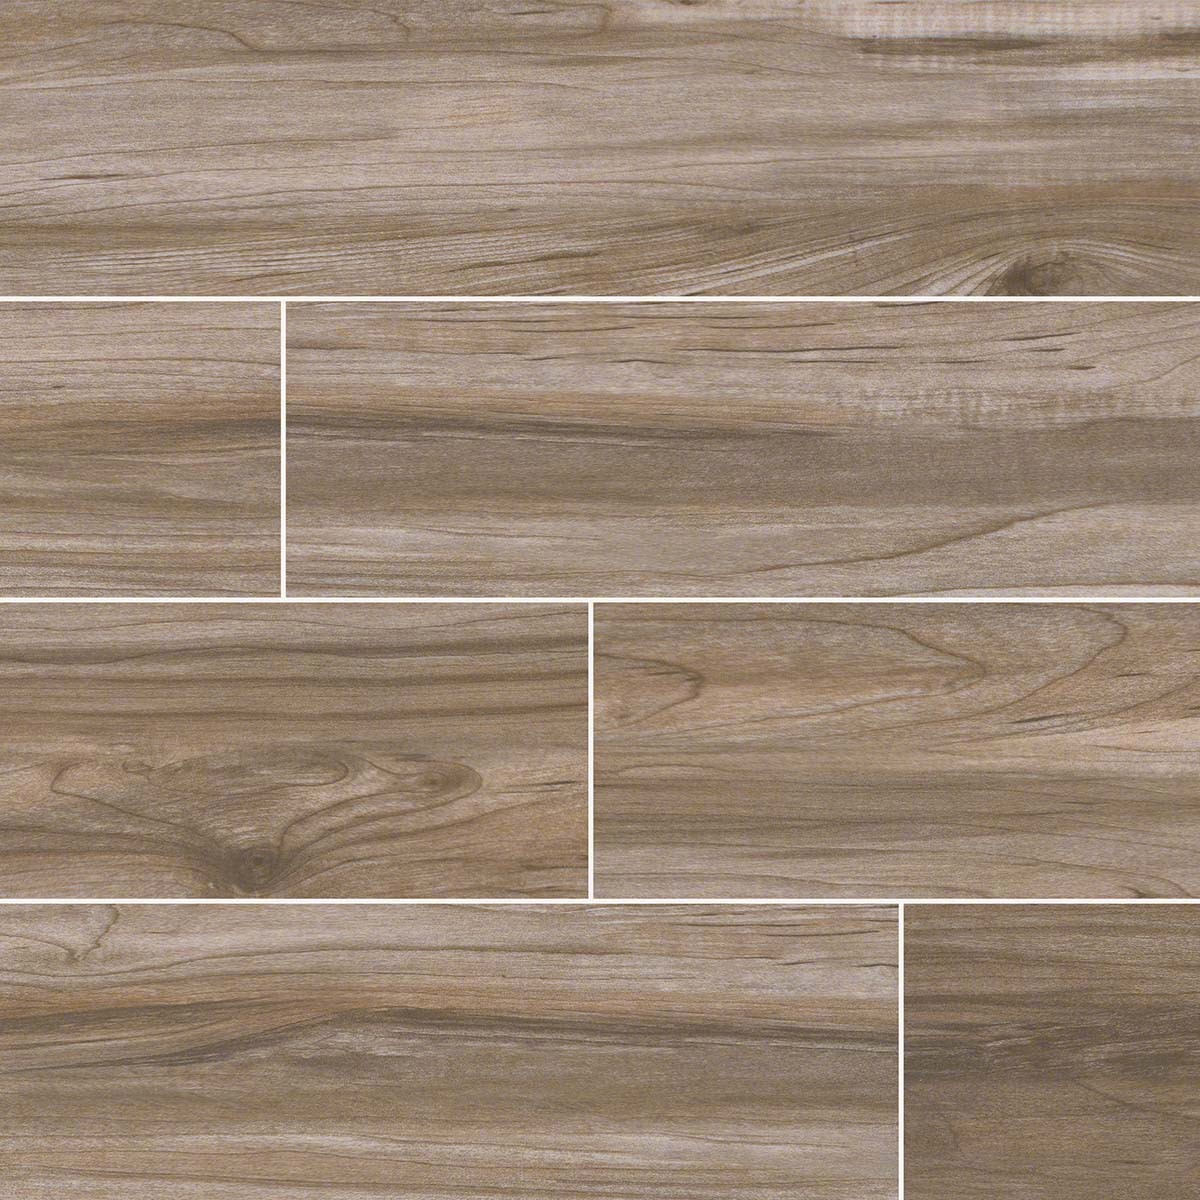 Tile Carolina Timber 6x24 Beige